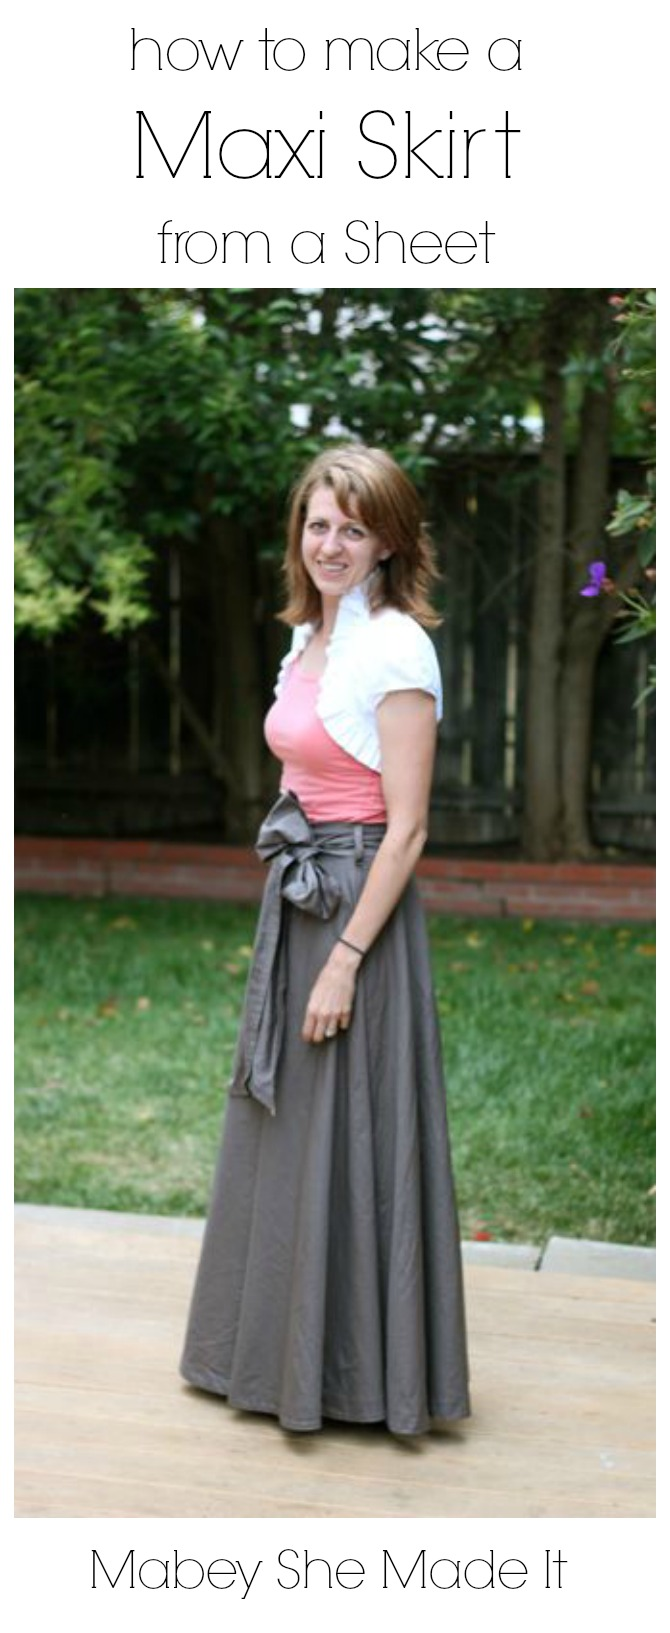 Make a Maxi Skirt from a Bed Sheet | Mabey She Made It - photo #3